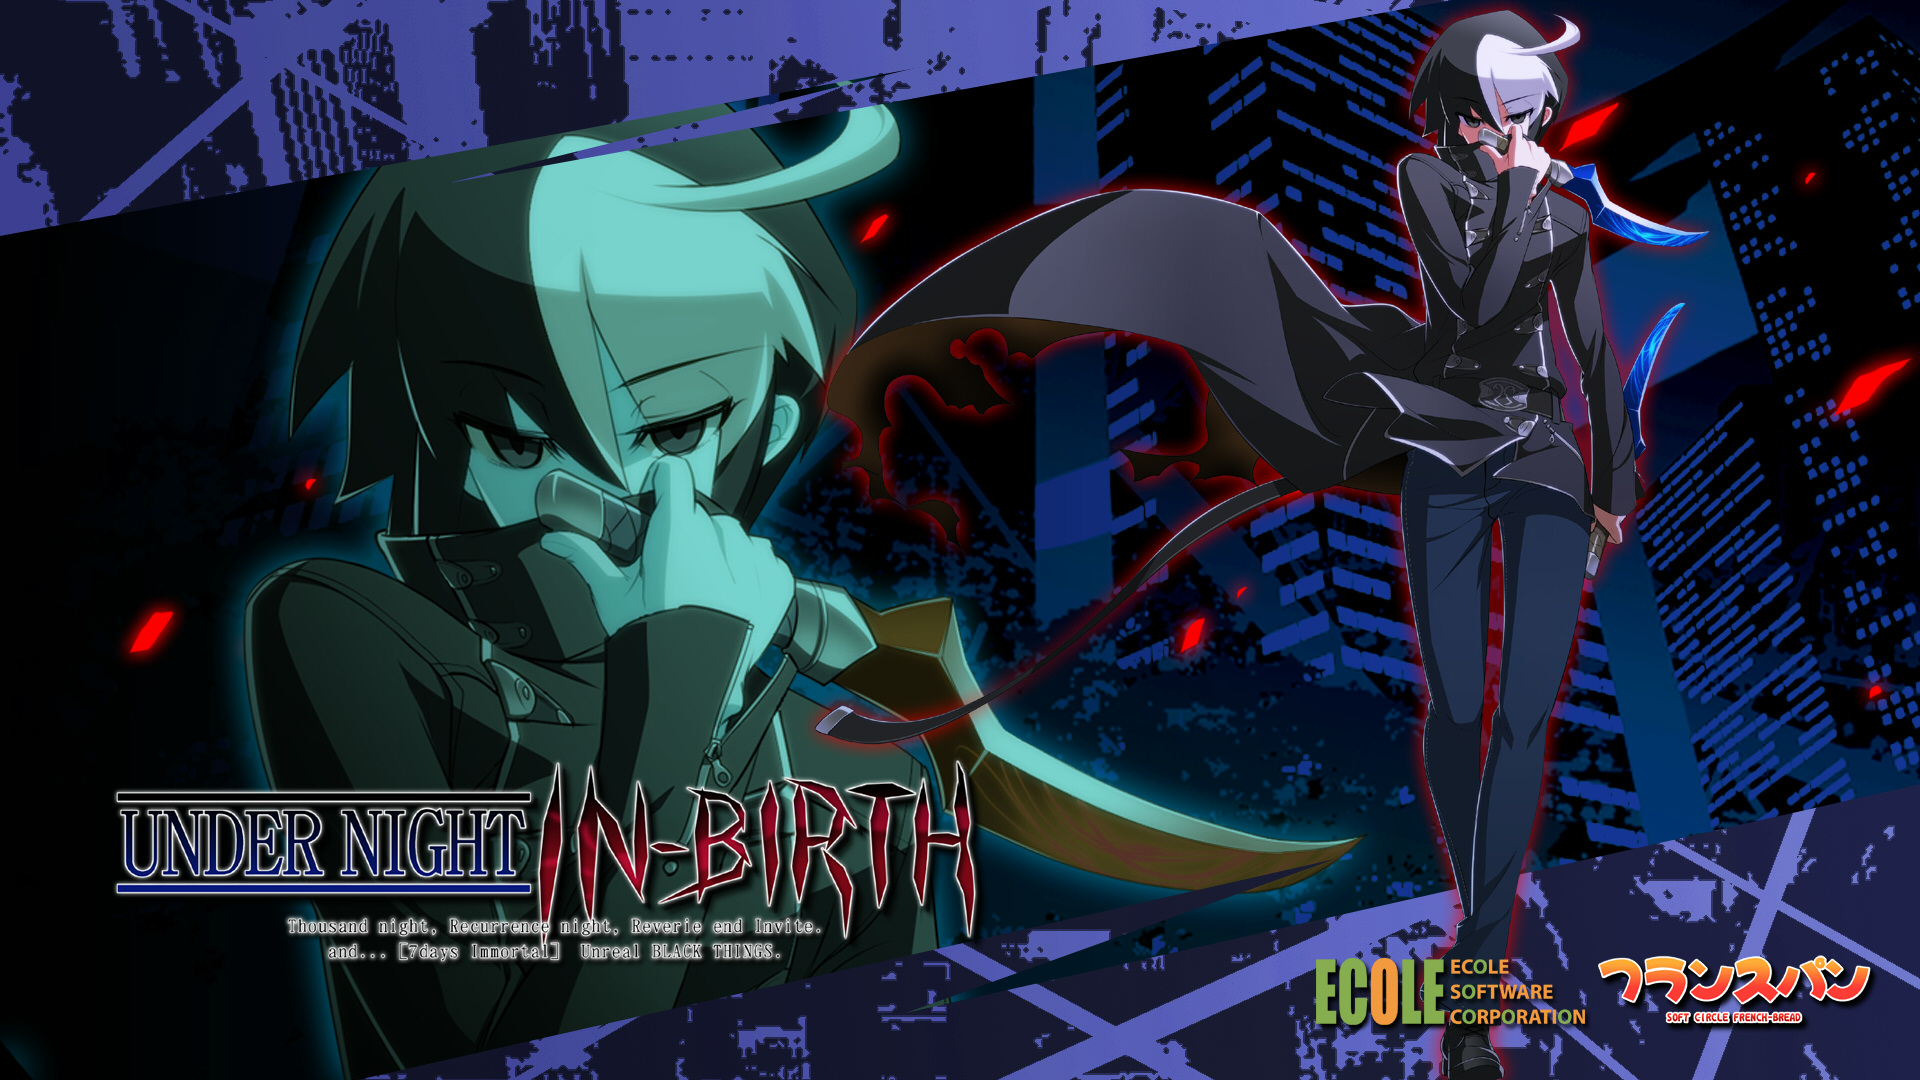 seth (under night in-birth) hd wallpaper #1241847 - zerochan anime